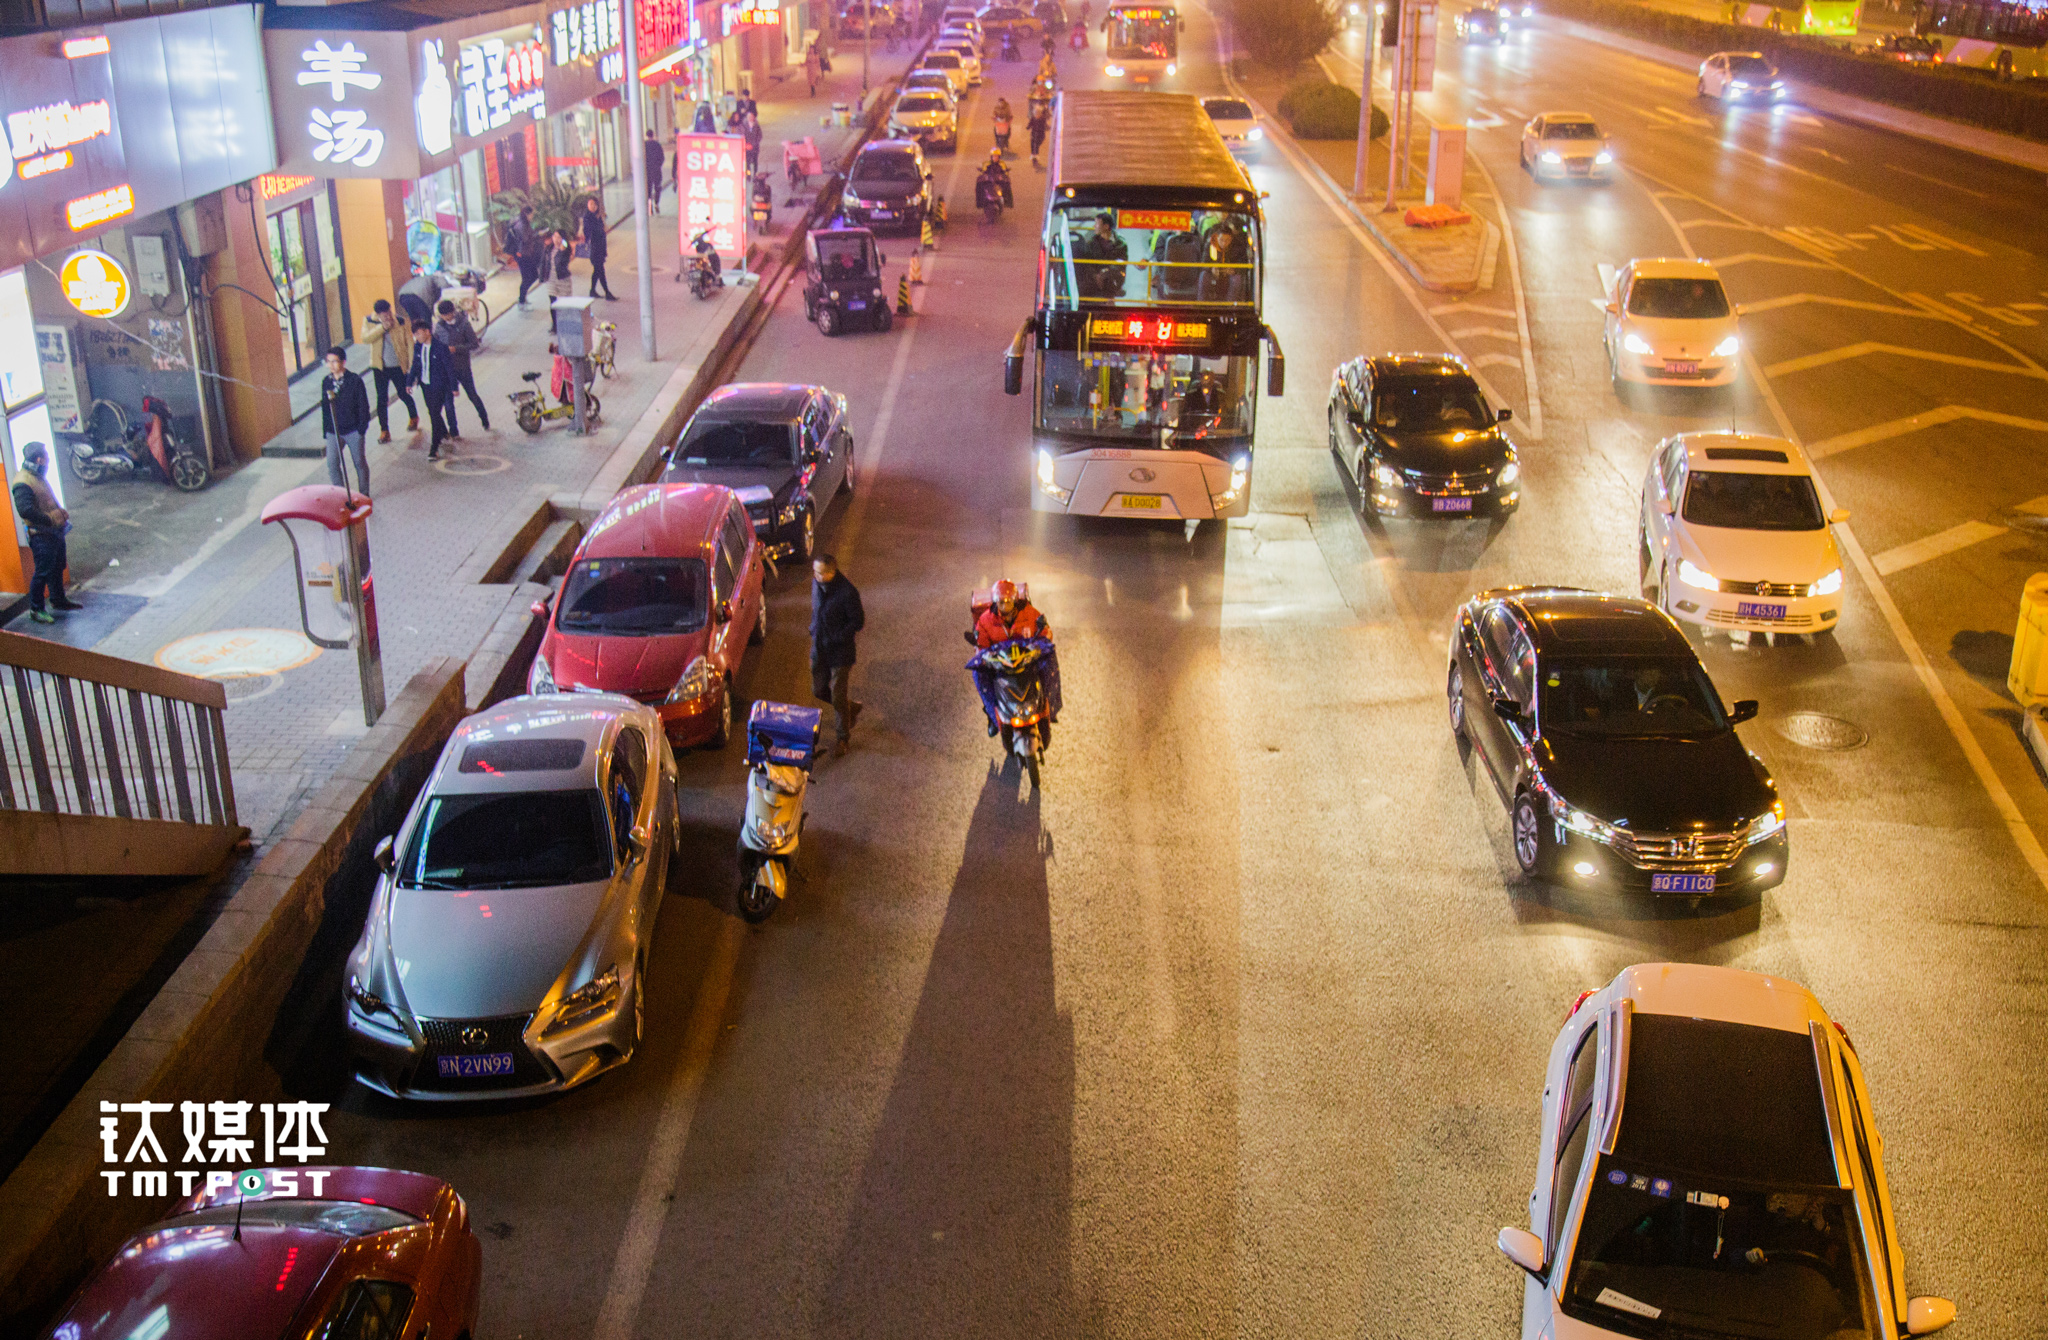 After midnight, you can still see delivery guys on the streets of Shuangjing. According to statistics, by July 2016, Baidu Takeout has over 40,000 delivery guys, while Meituan has 60,000, and Eleme has over one million(part-time delivery guys included). The takeout sector of the catering industry in China had reached ¥230 billion in 2015, accounting for 7.4% of the whole catering consumption.